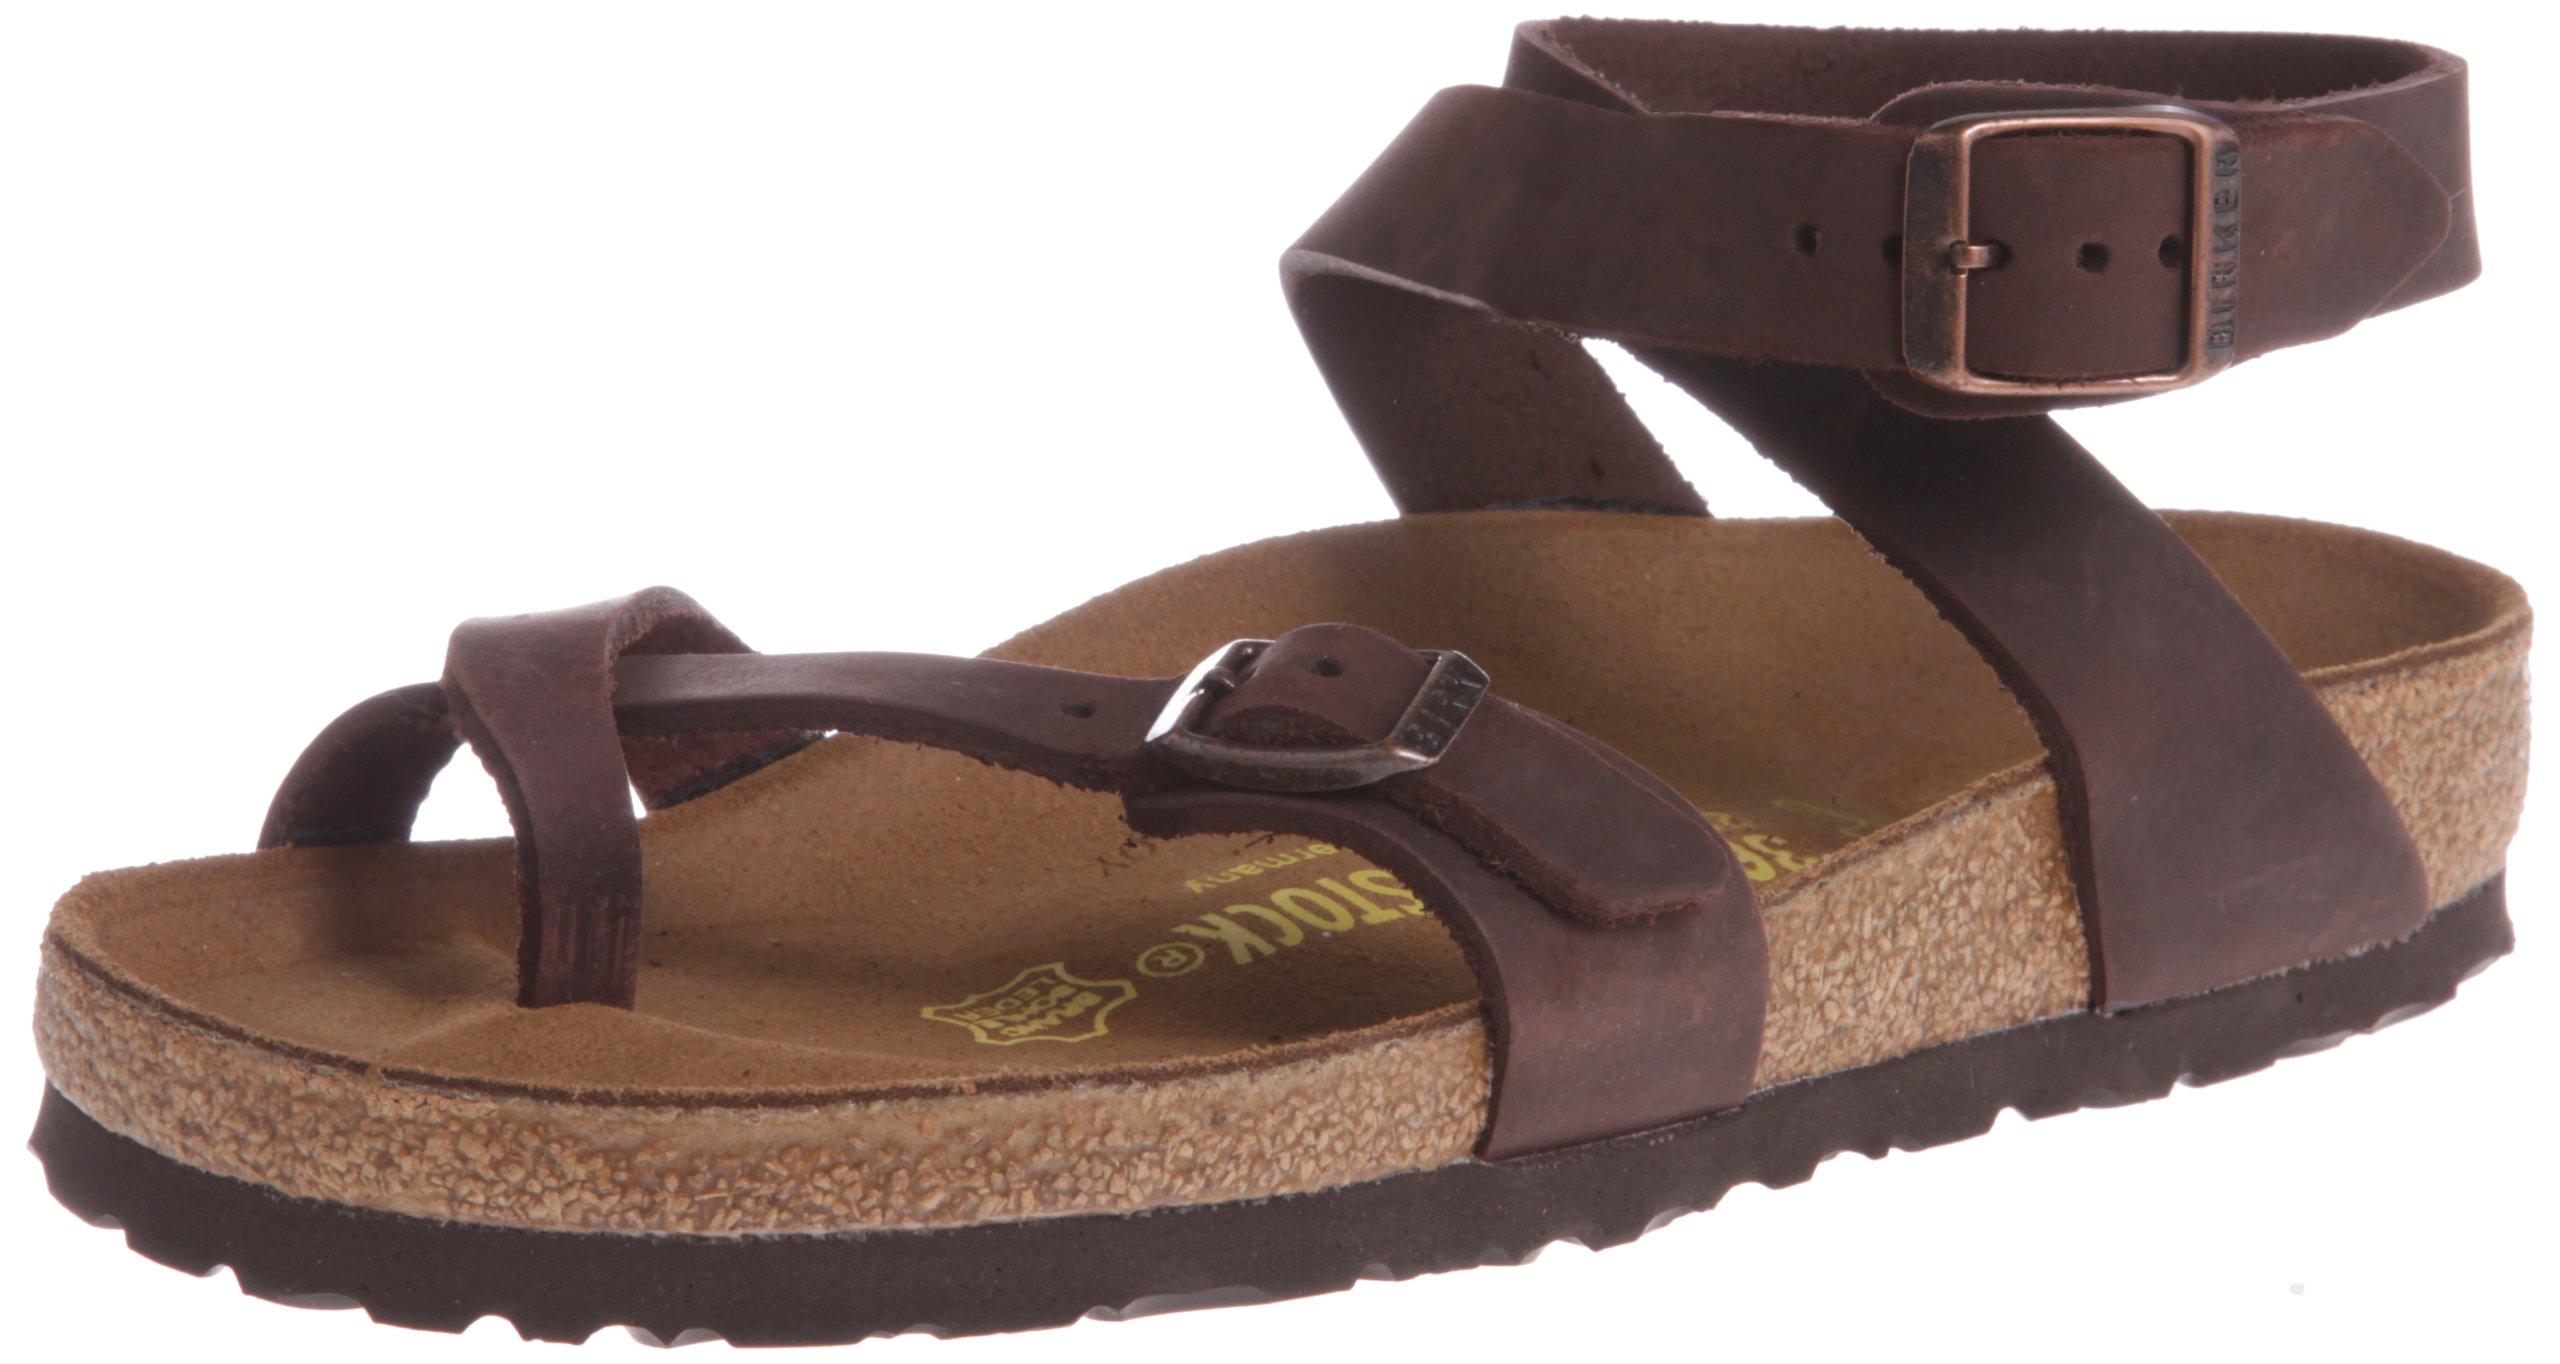 19a0e1ed91e Galleon - Birkenstock Women s Yara Leather Ankle-Strap Sandal